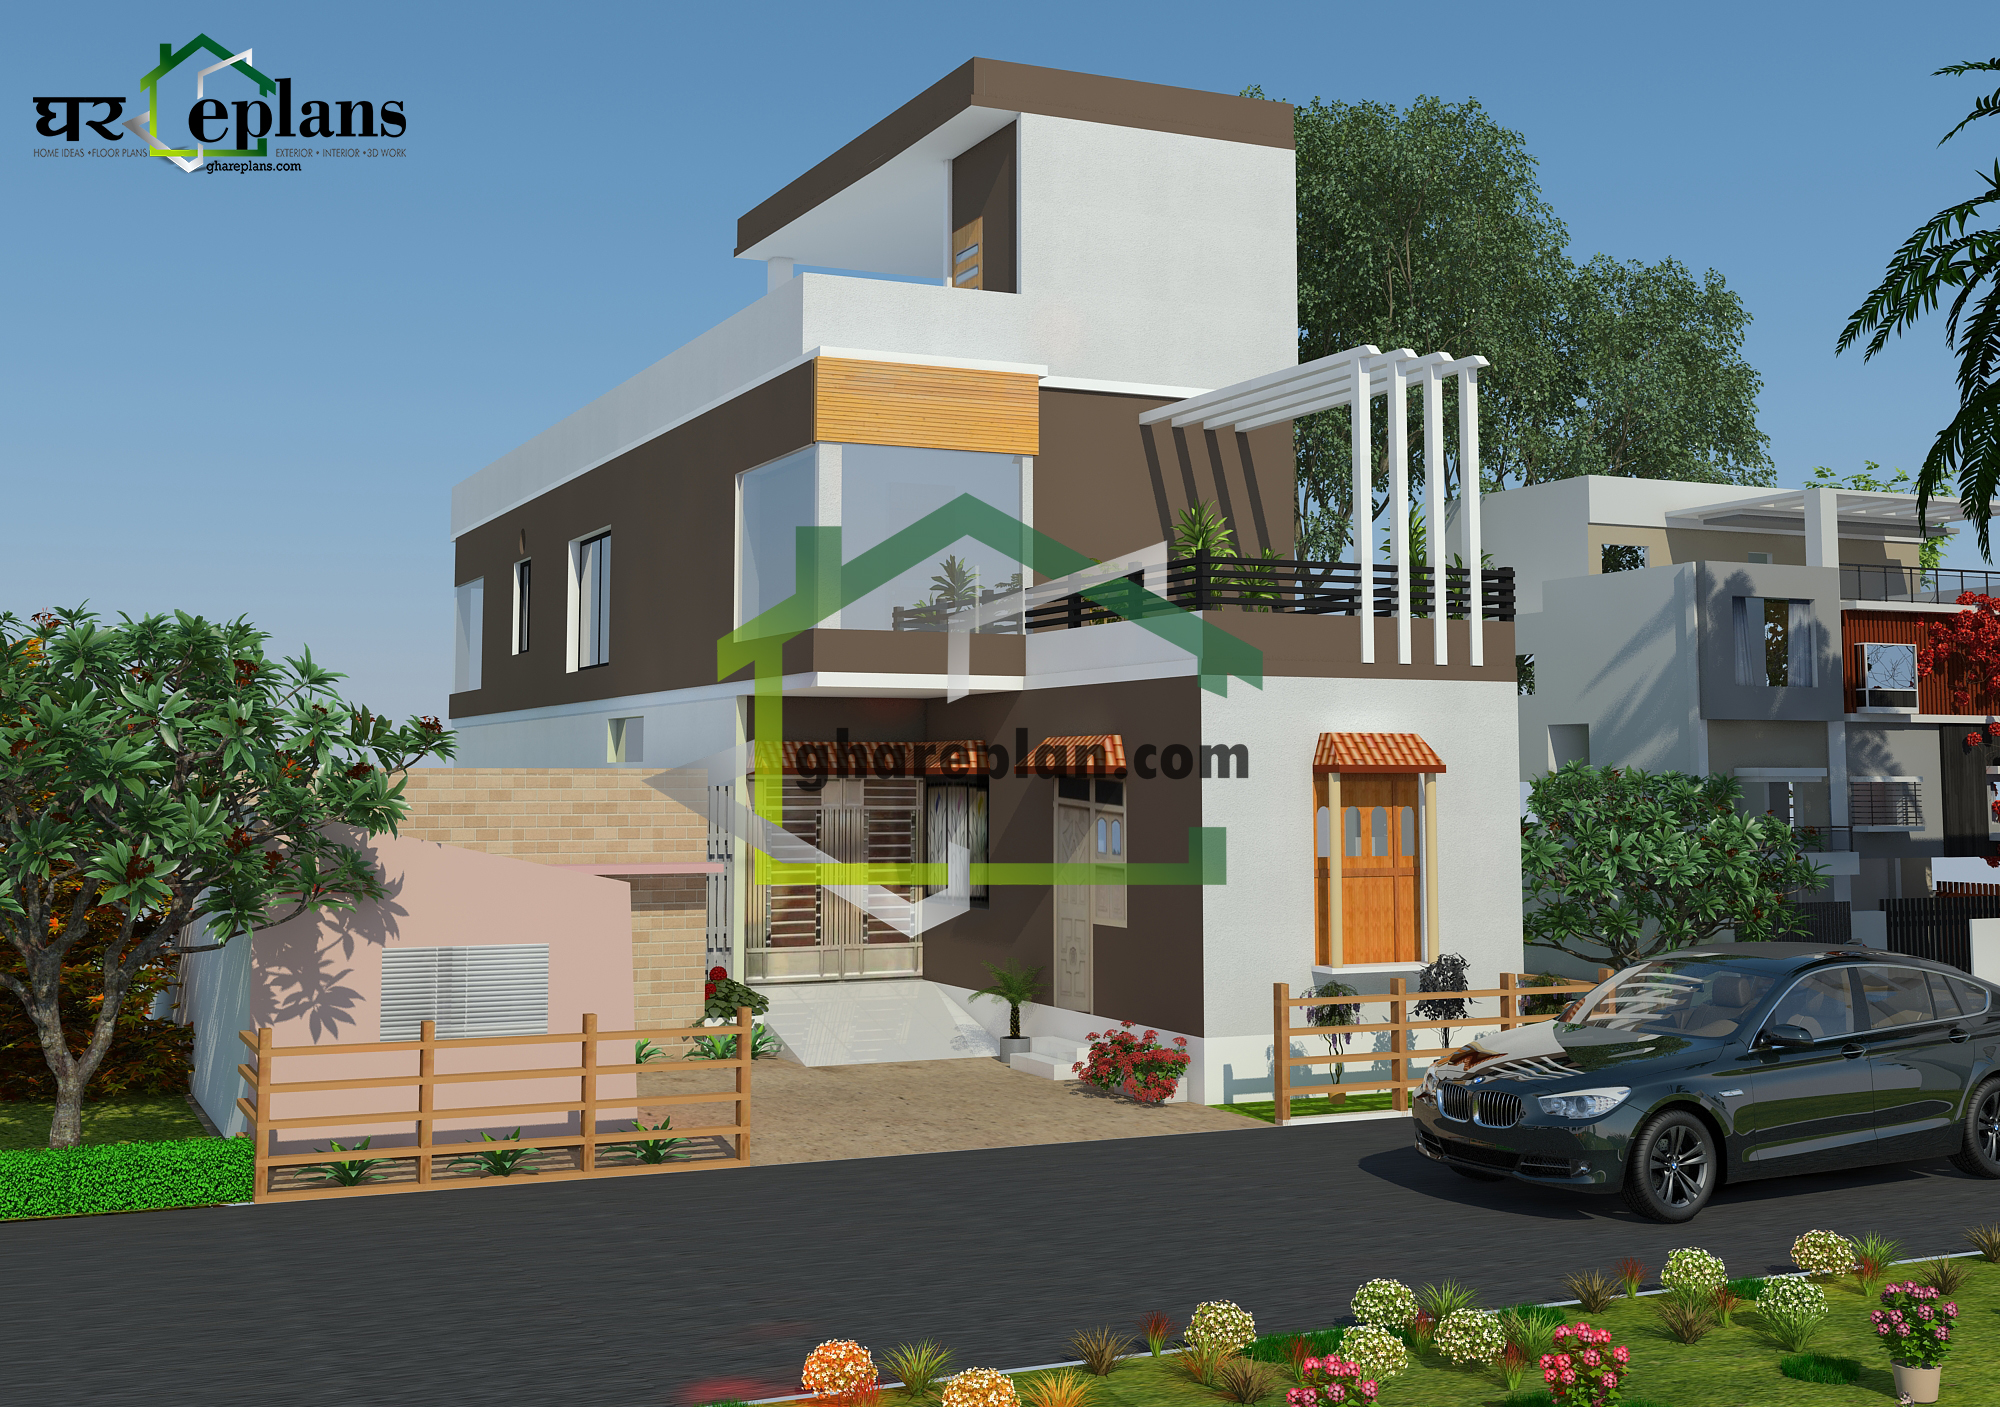 West Facing Ground Floor Elevation : Best elevation deisgns for west facing two floor house